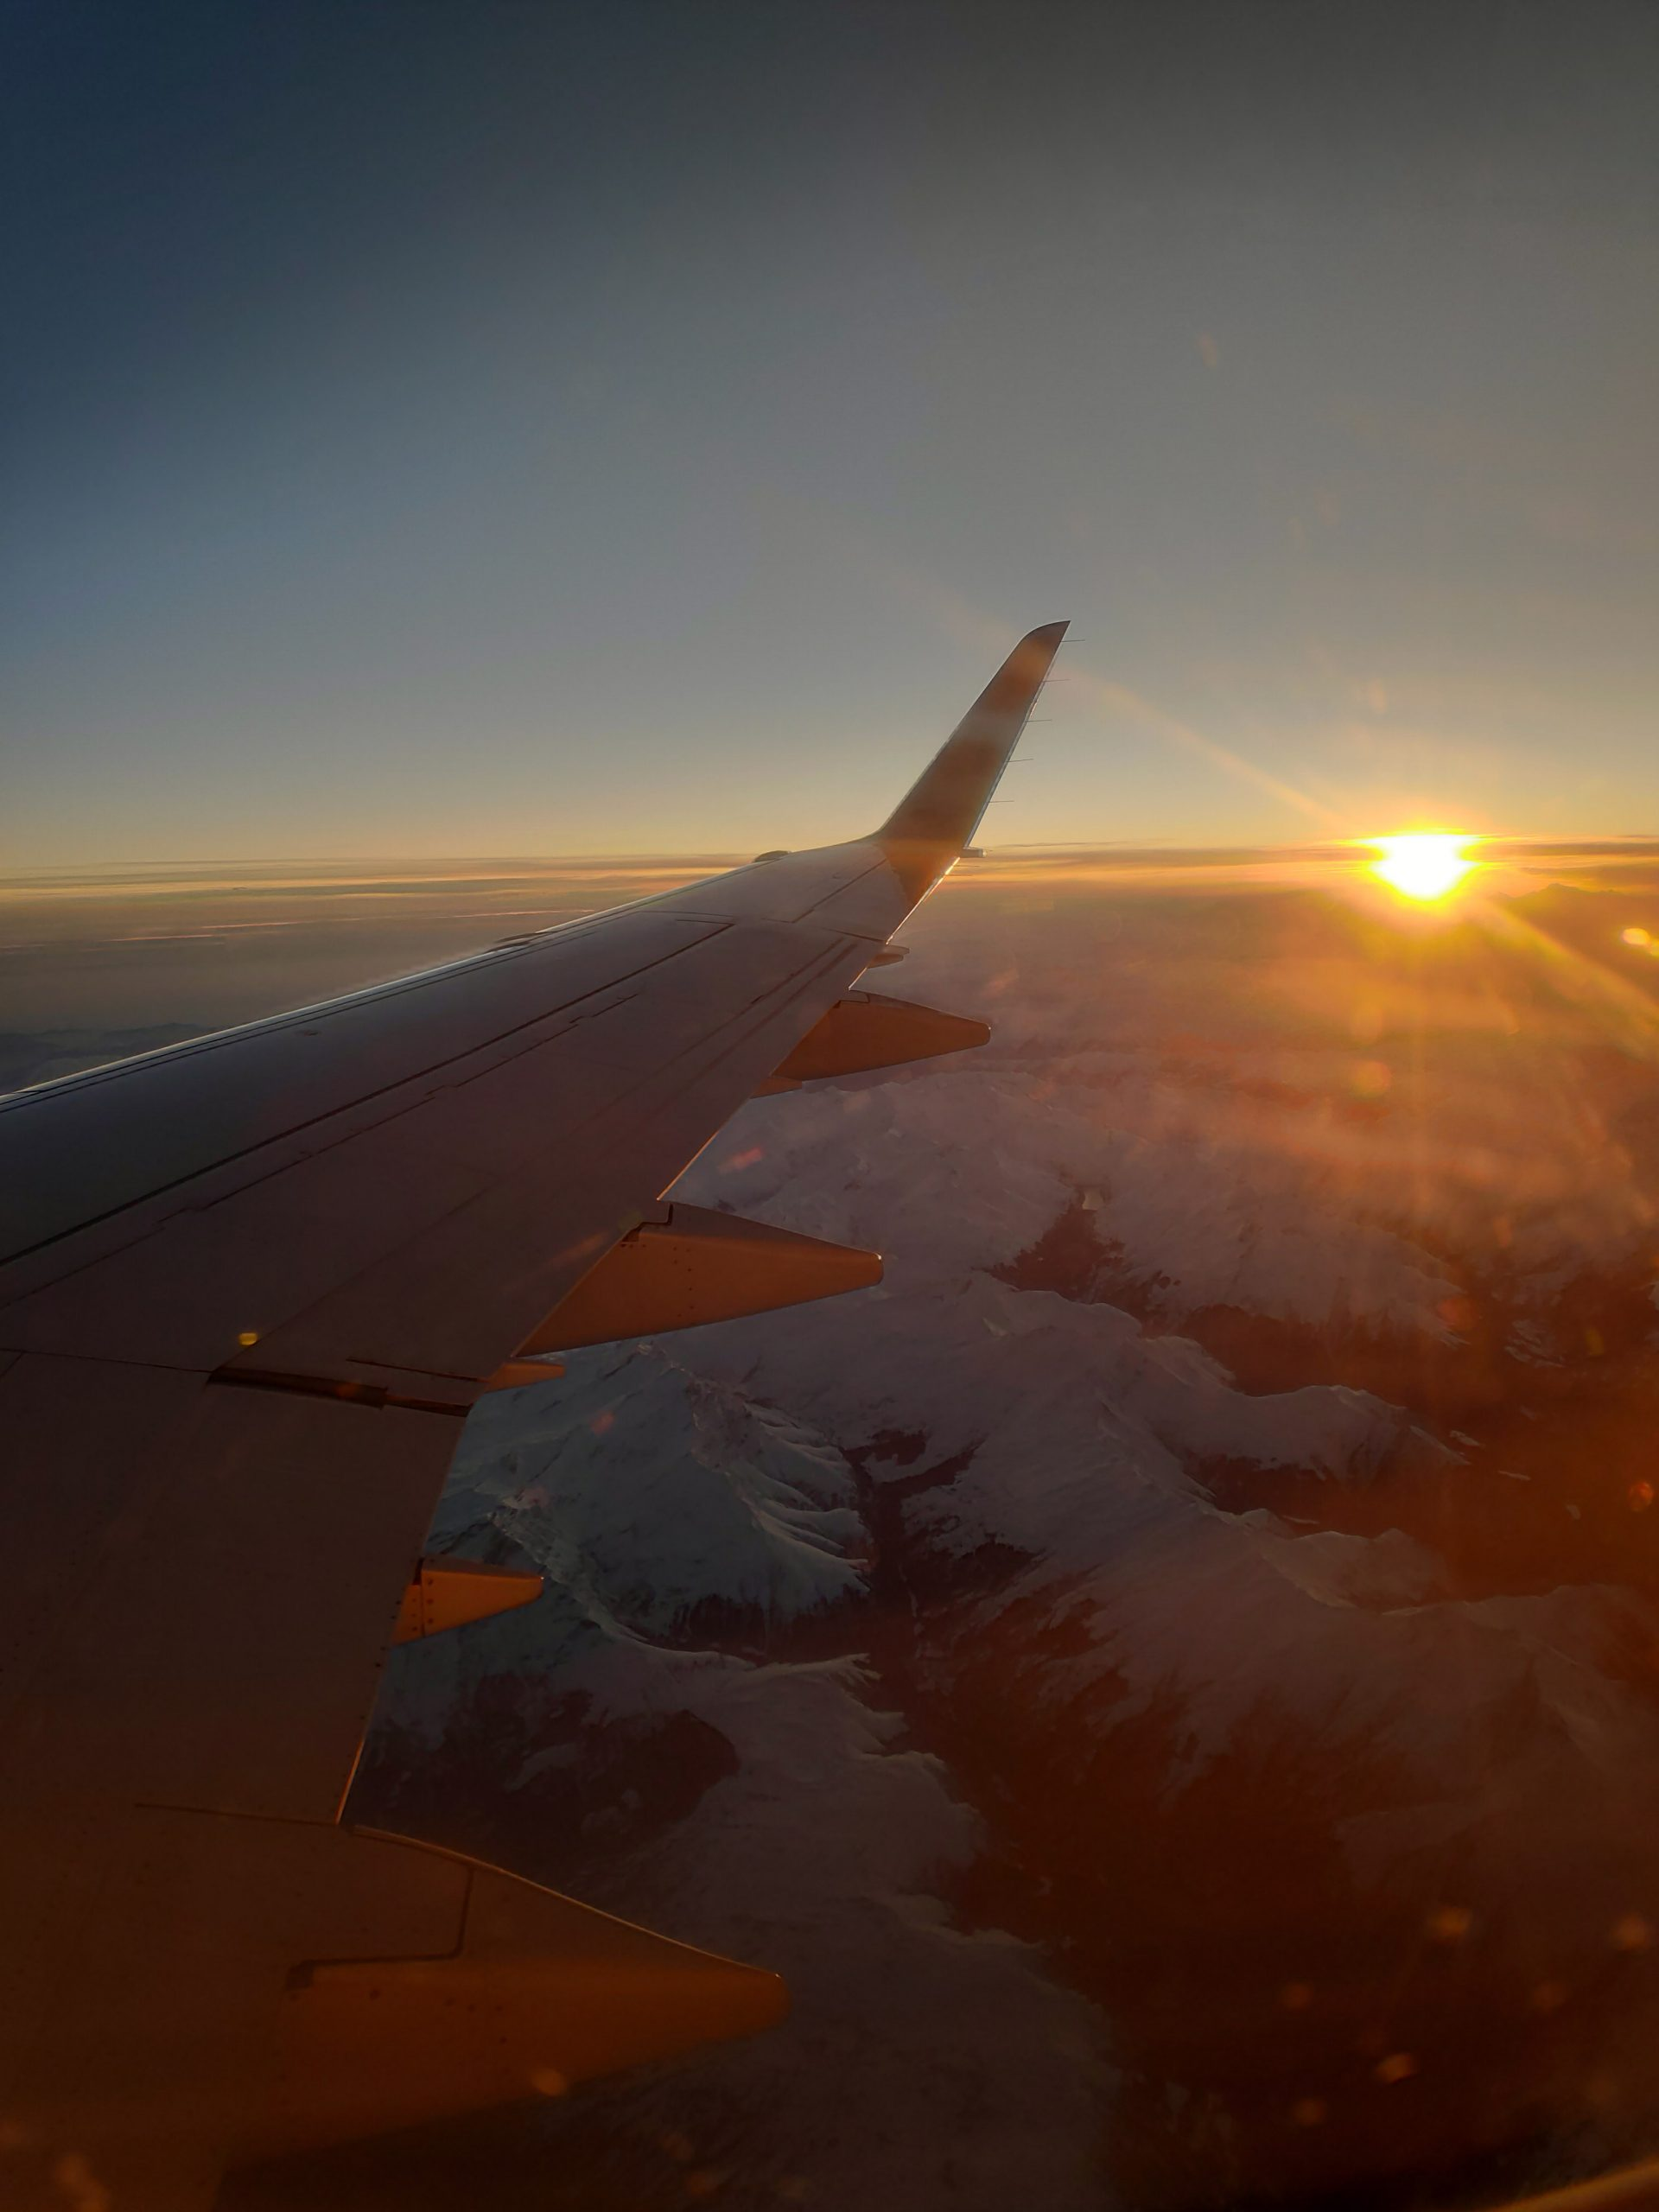 Really nice sunset over the snowy Alps.